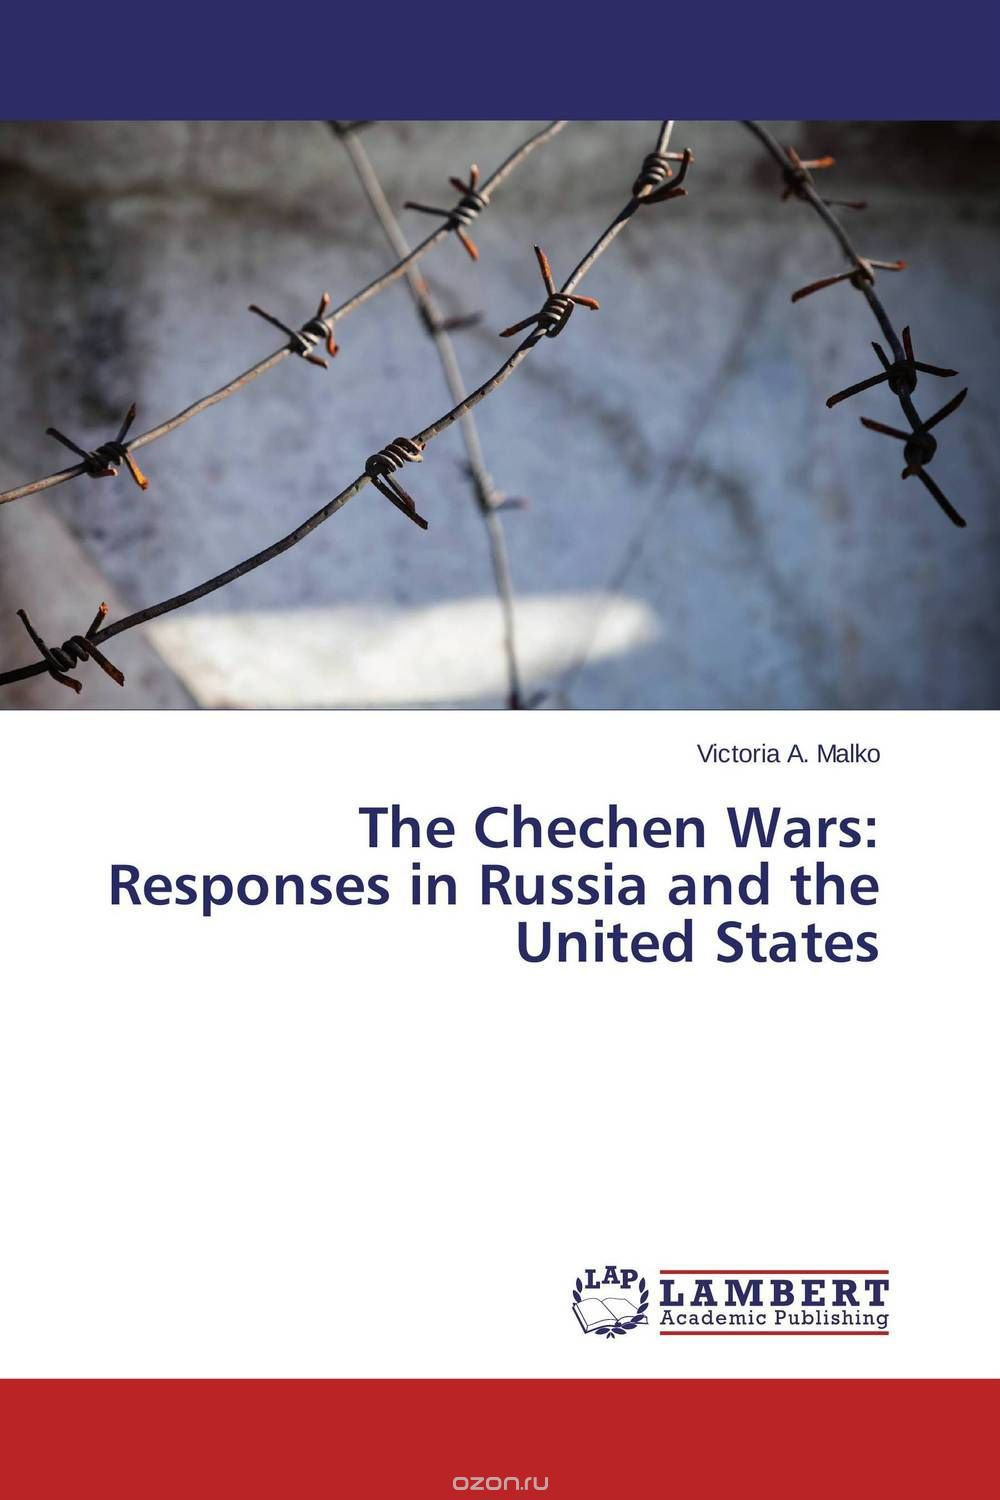 The Chechen Wars: Responses in Russia and the United States